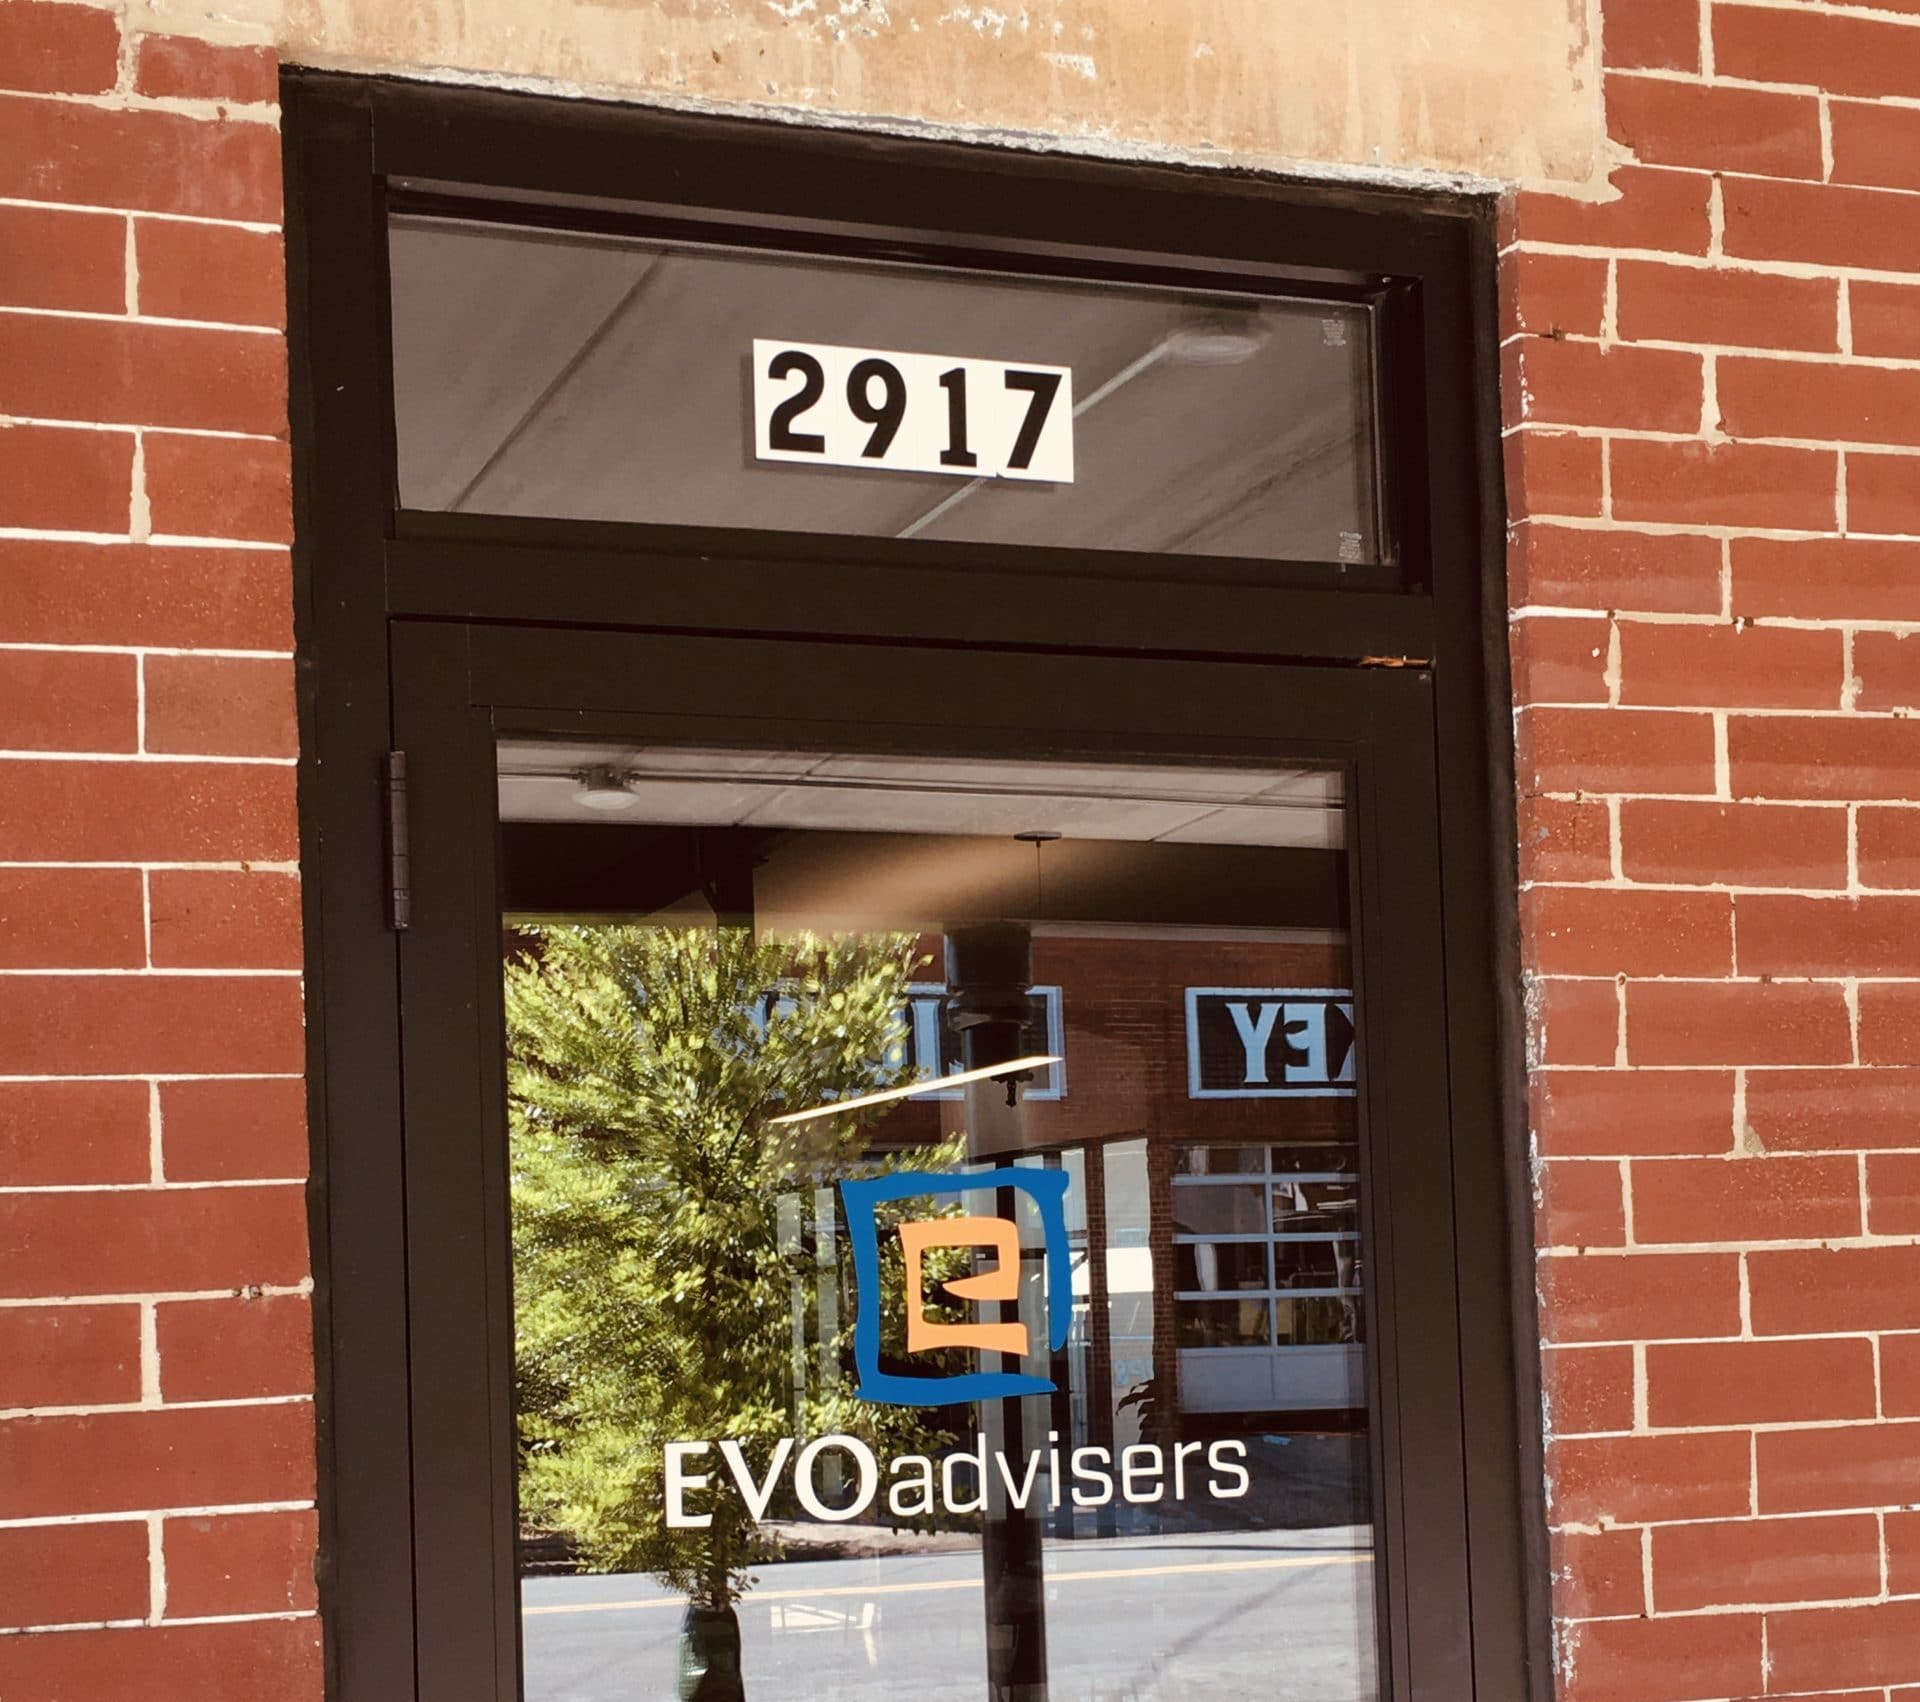 EVOadvisers Richmond Office, 2917 W Leigh St.